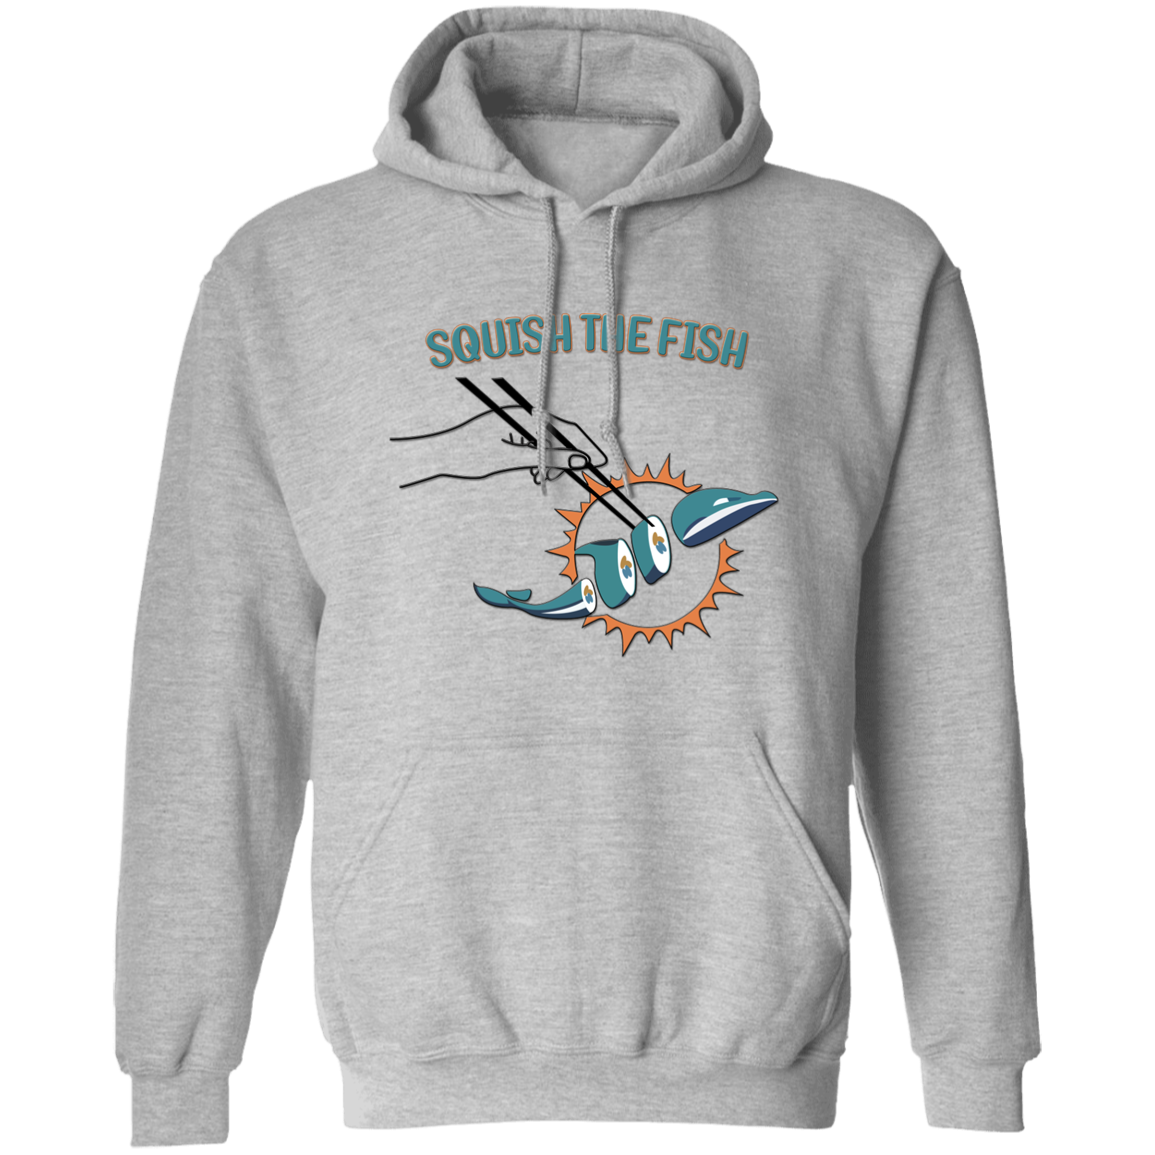 Squish the Fish Hoodie